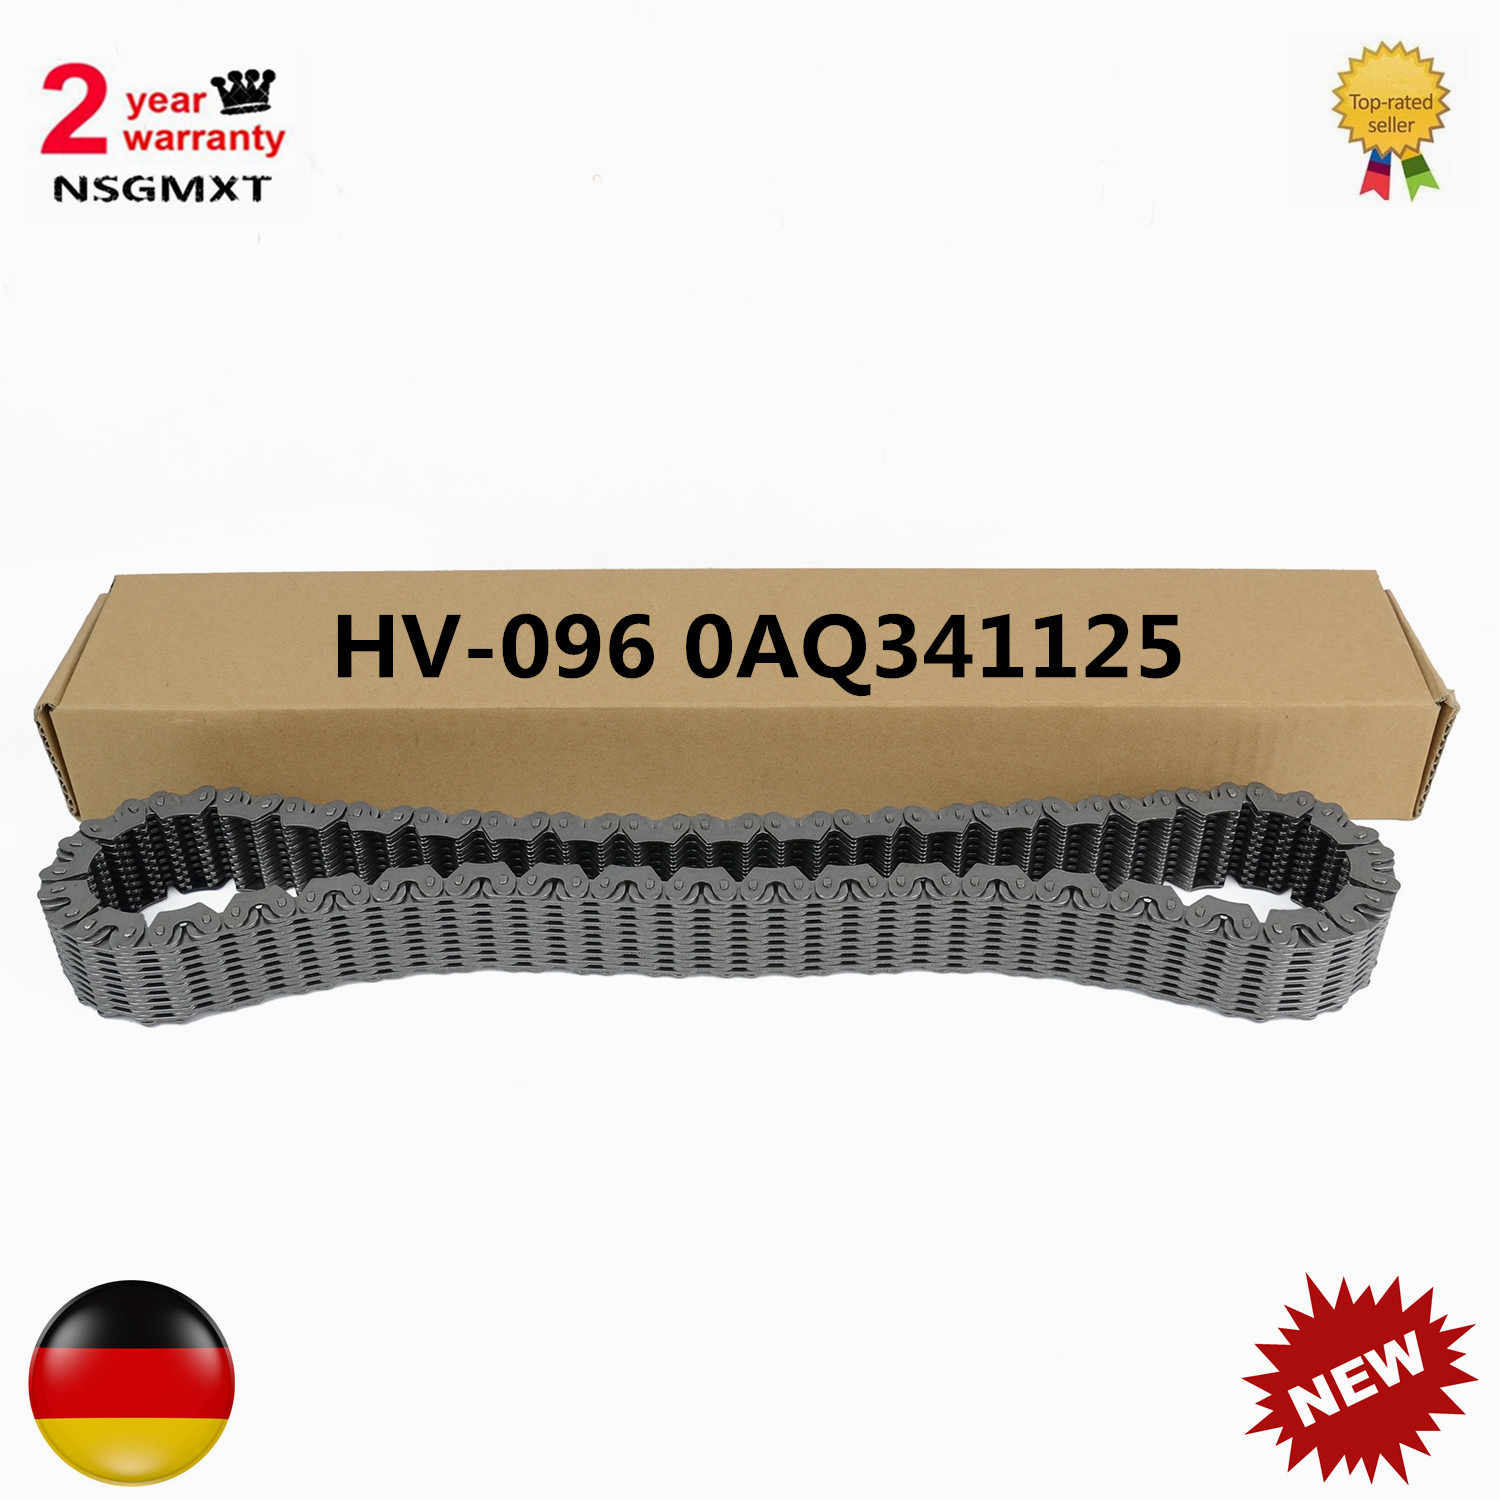 AP01 0AQ341125 Transfer Case Chain For Audi Q7 Transfer Case Chain HV-096 / HV096 Chain BW4430